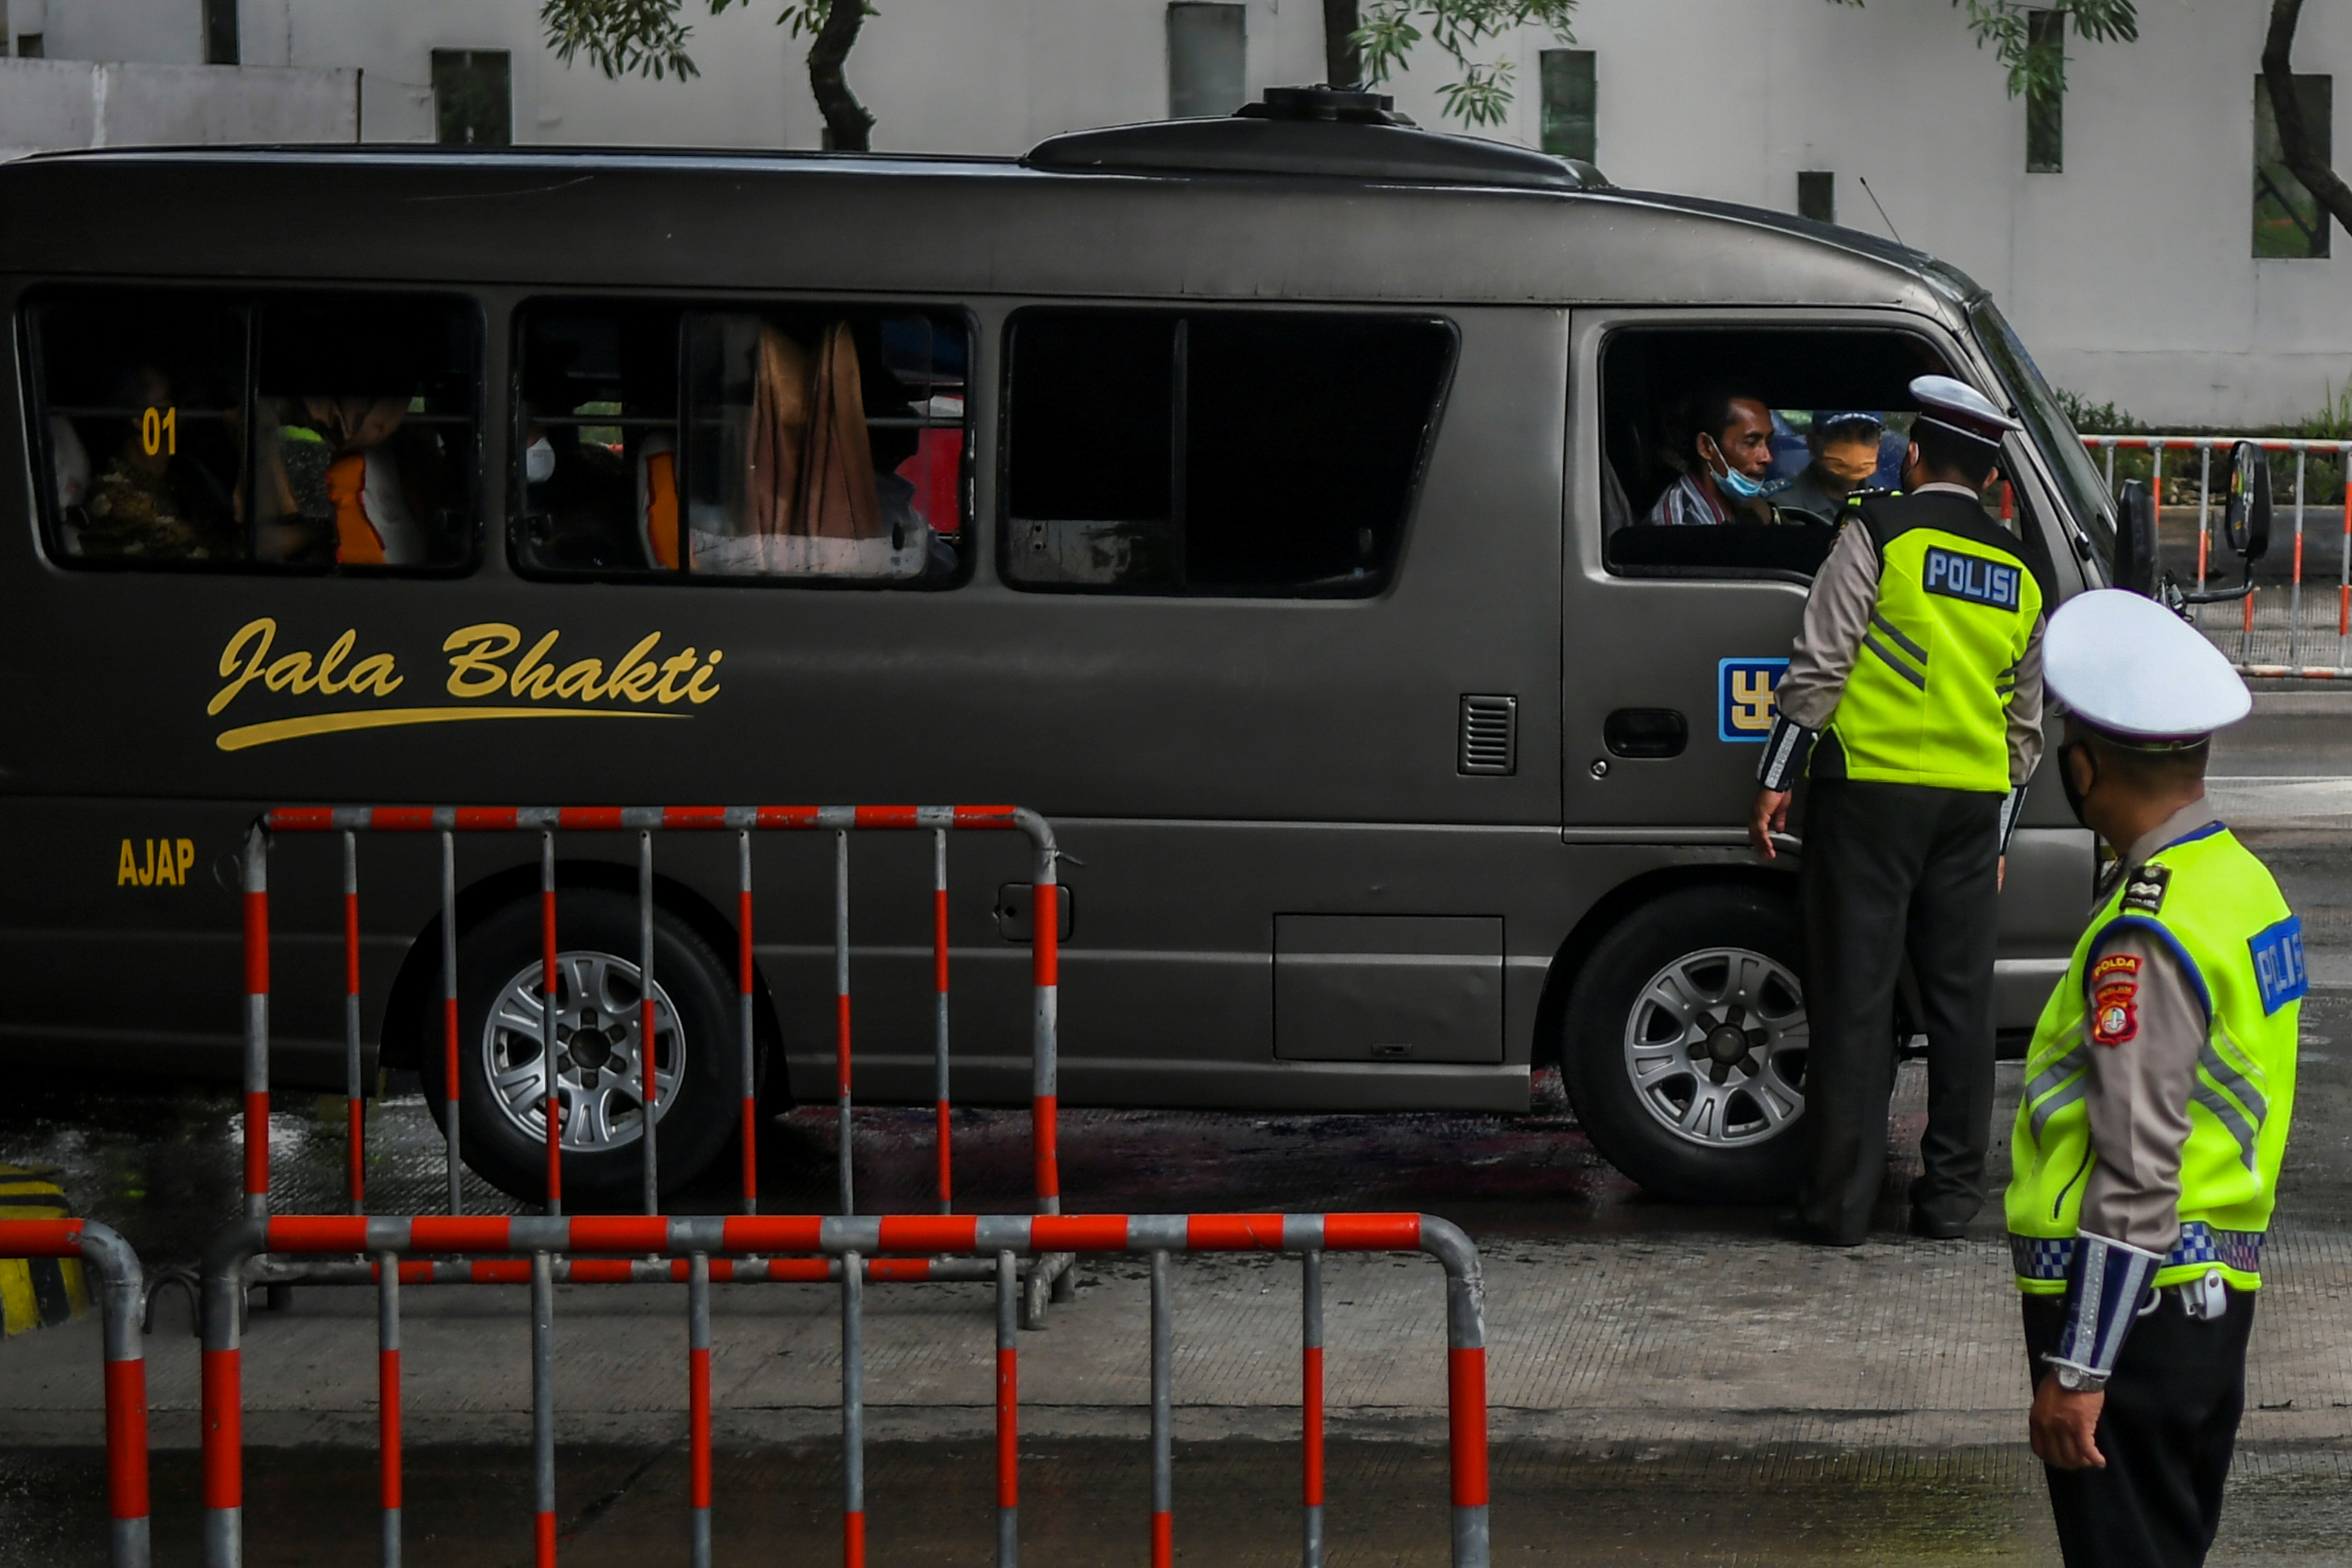 Police officers inspect a bus on the first day of a national travel ban as Indonesia halts sea, land, air, and rail travel for the Eid al-Fitr celebrations in an effort to prevent a large-scale transmission of the coronavirus disease (COVID-19) pandemic in Banten Province, Indonesia May 6, 2021, in this photo taken by Antara Foto/Galih Pradipta/via Reuters.